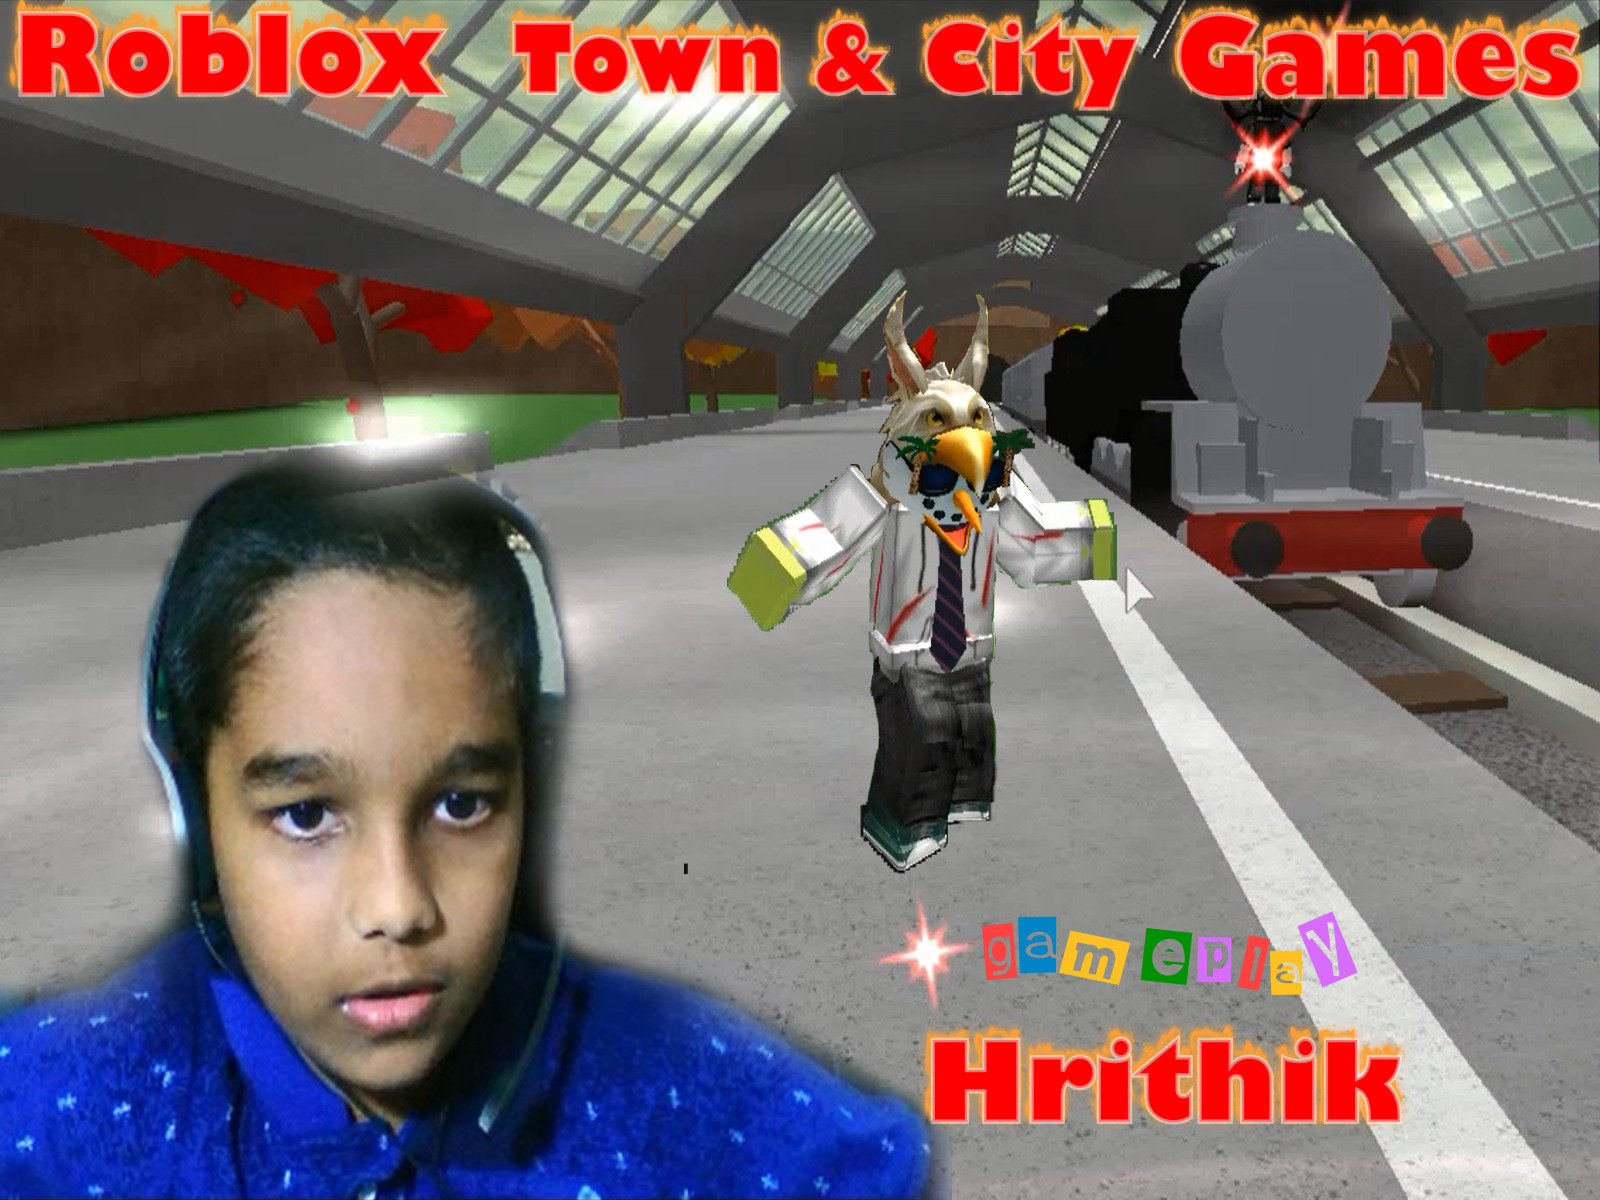 Clip Roblox Gameplay Hrithik Clip Roblox The Robots Titles On Amazon Prime Video Uk Starring Redd Newonamzprimeuk